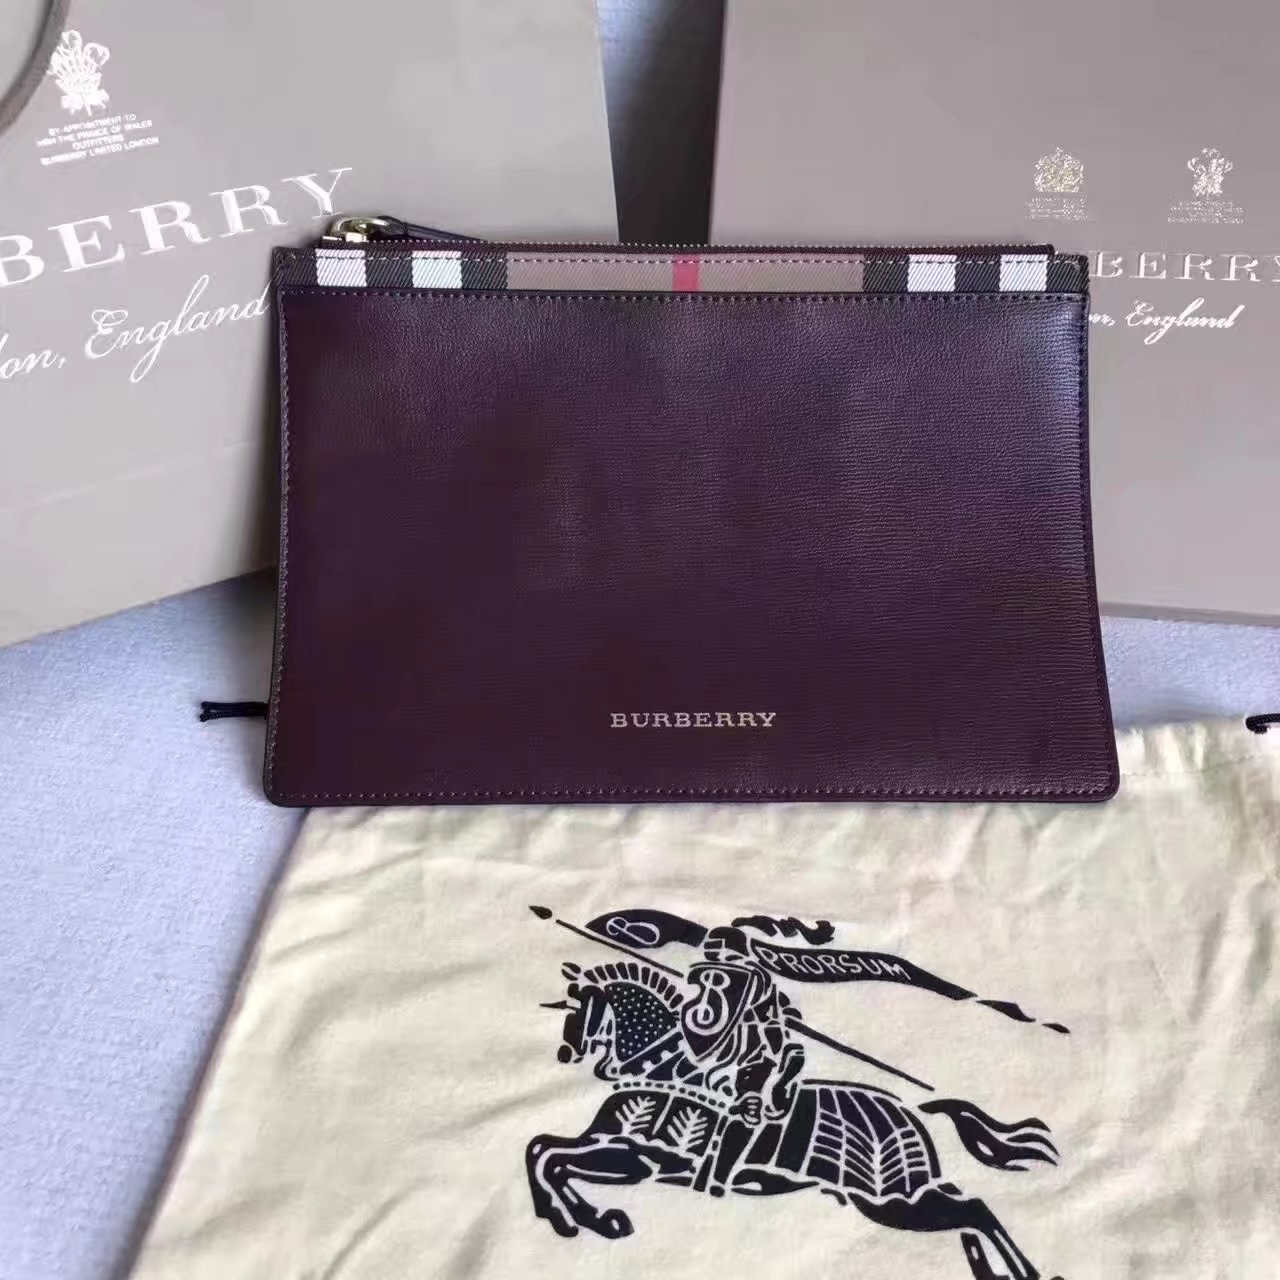 Burberry 2017 New Leather Clutch Bag